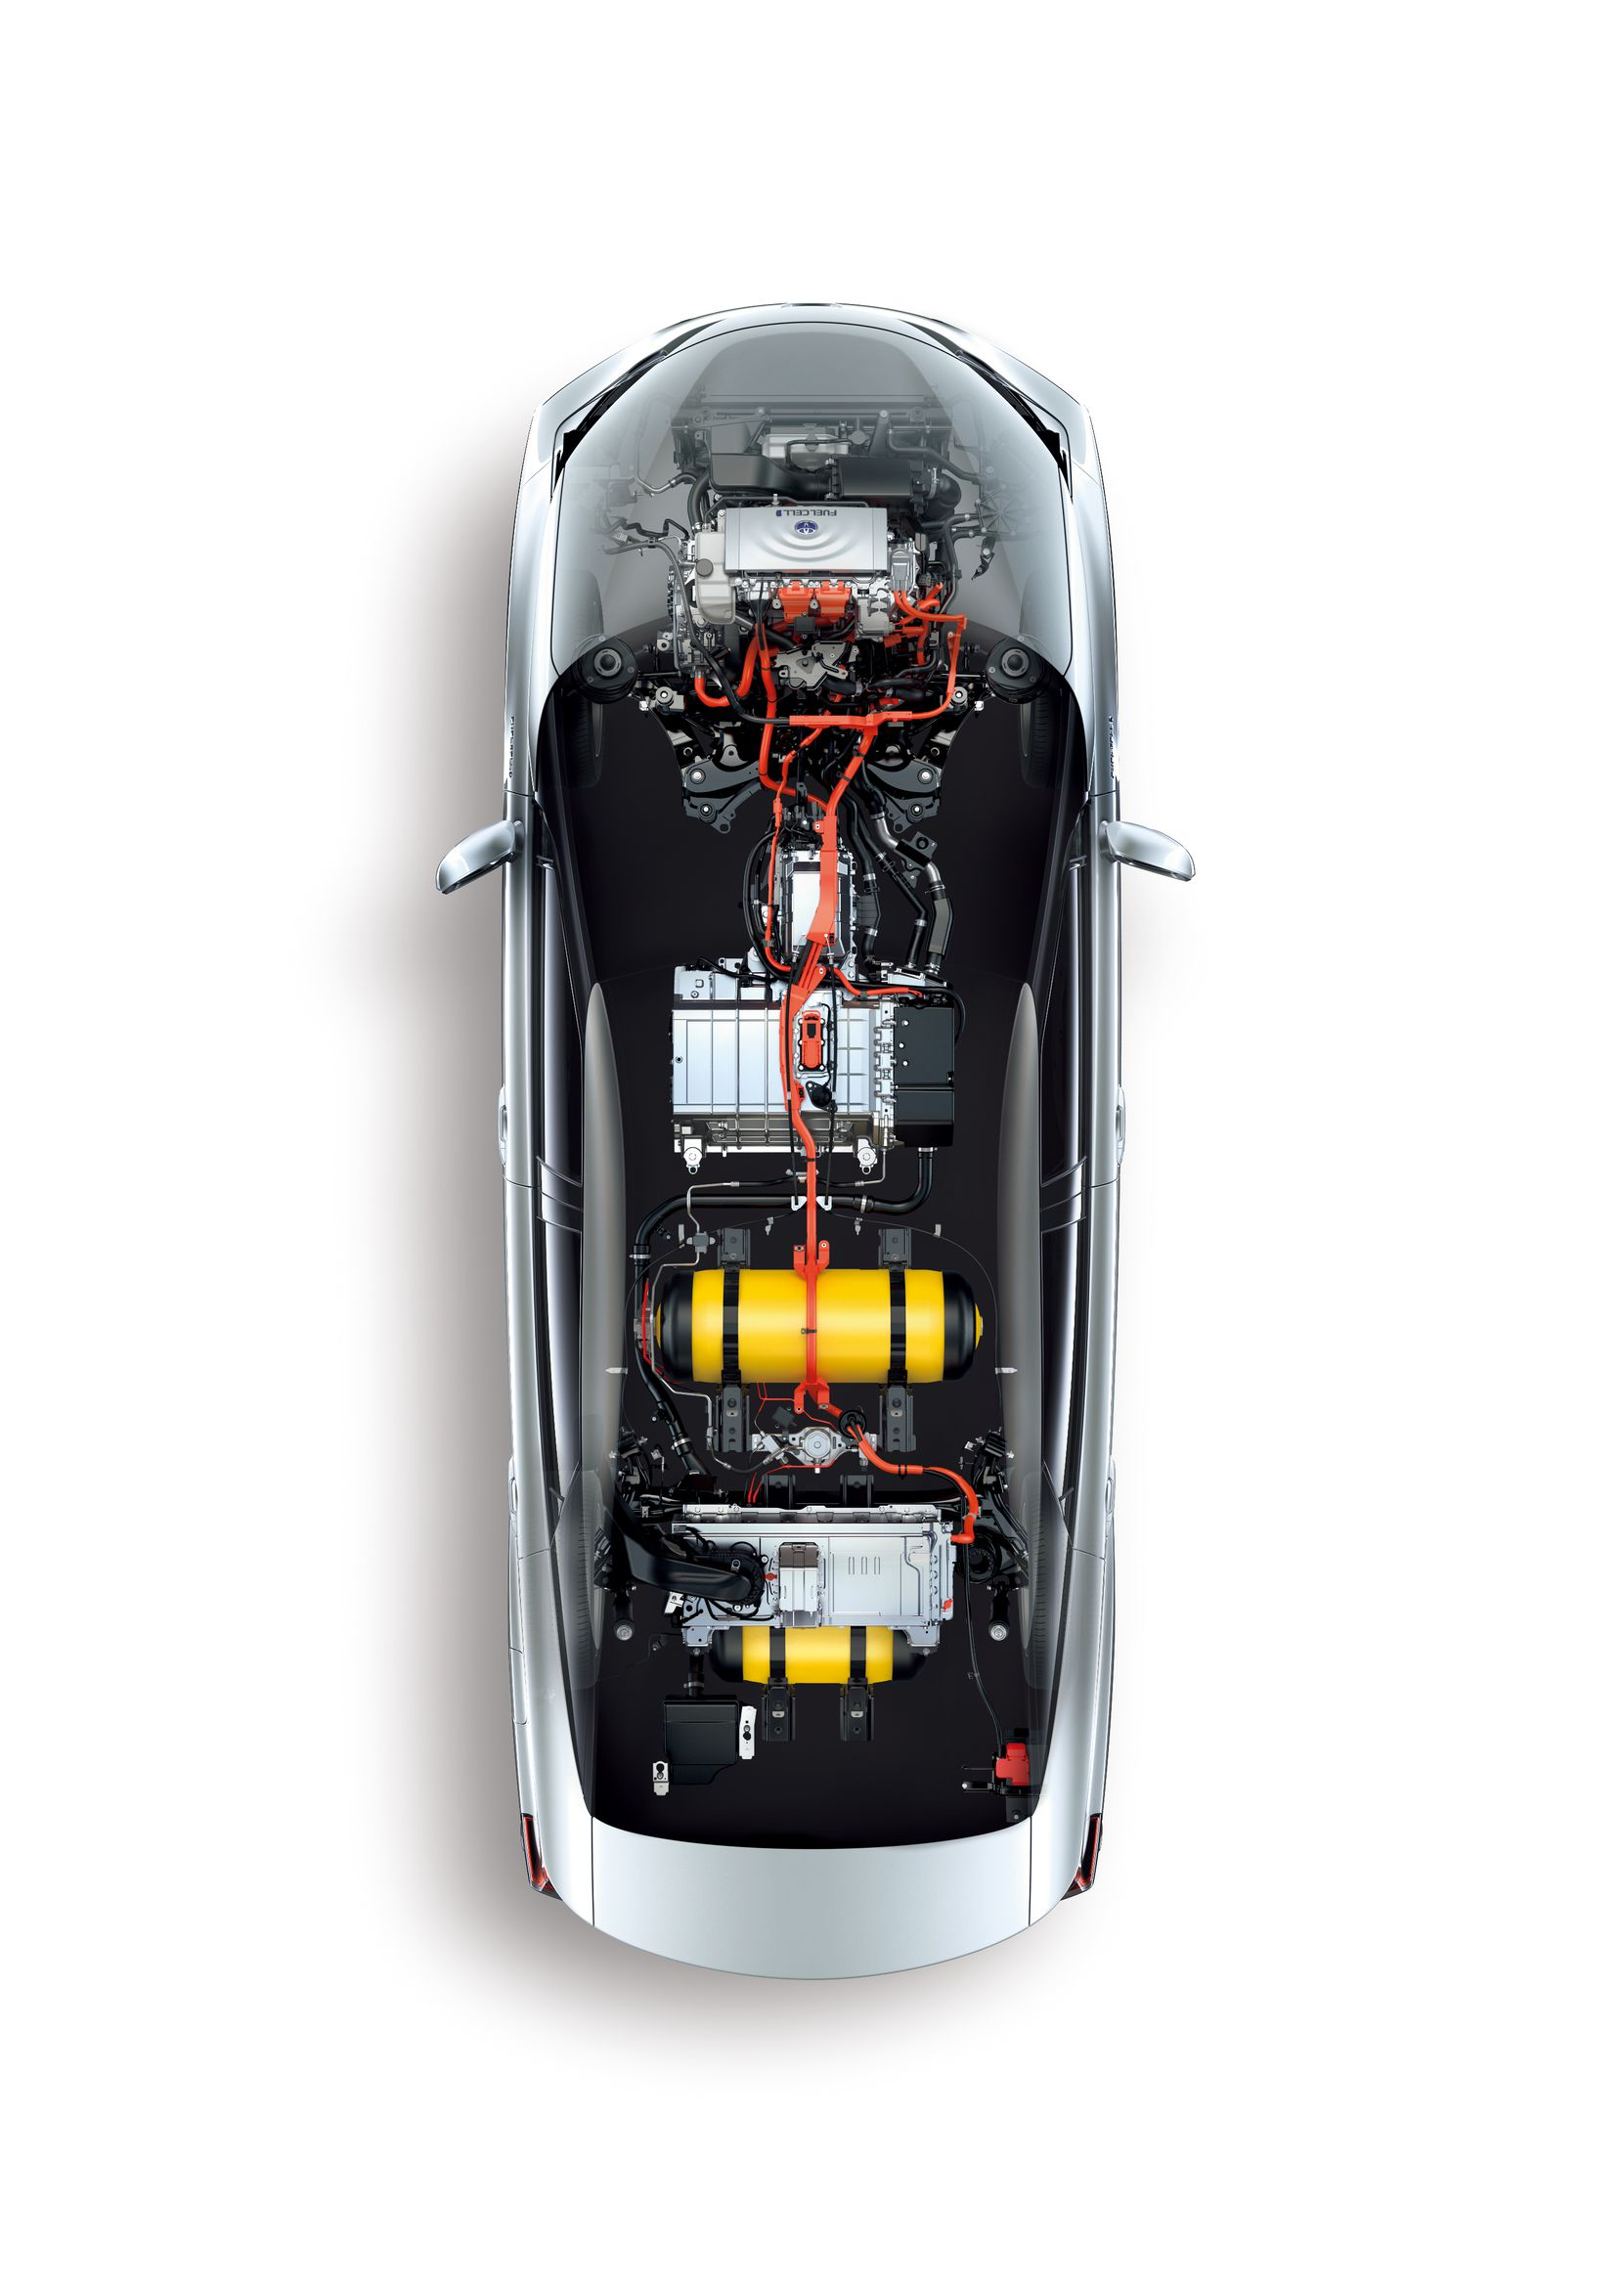 An overhead of the fuel cell system in a Mirai.